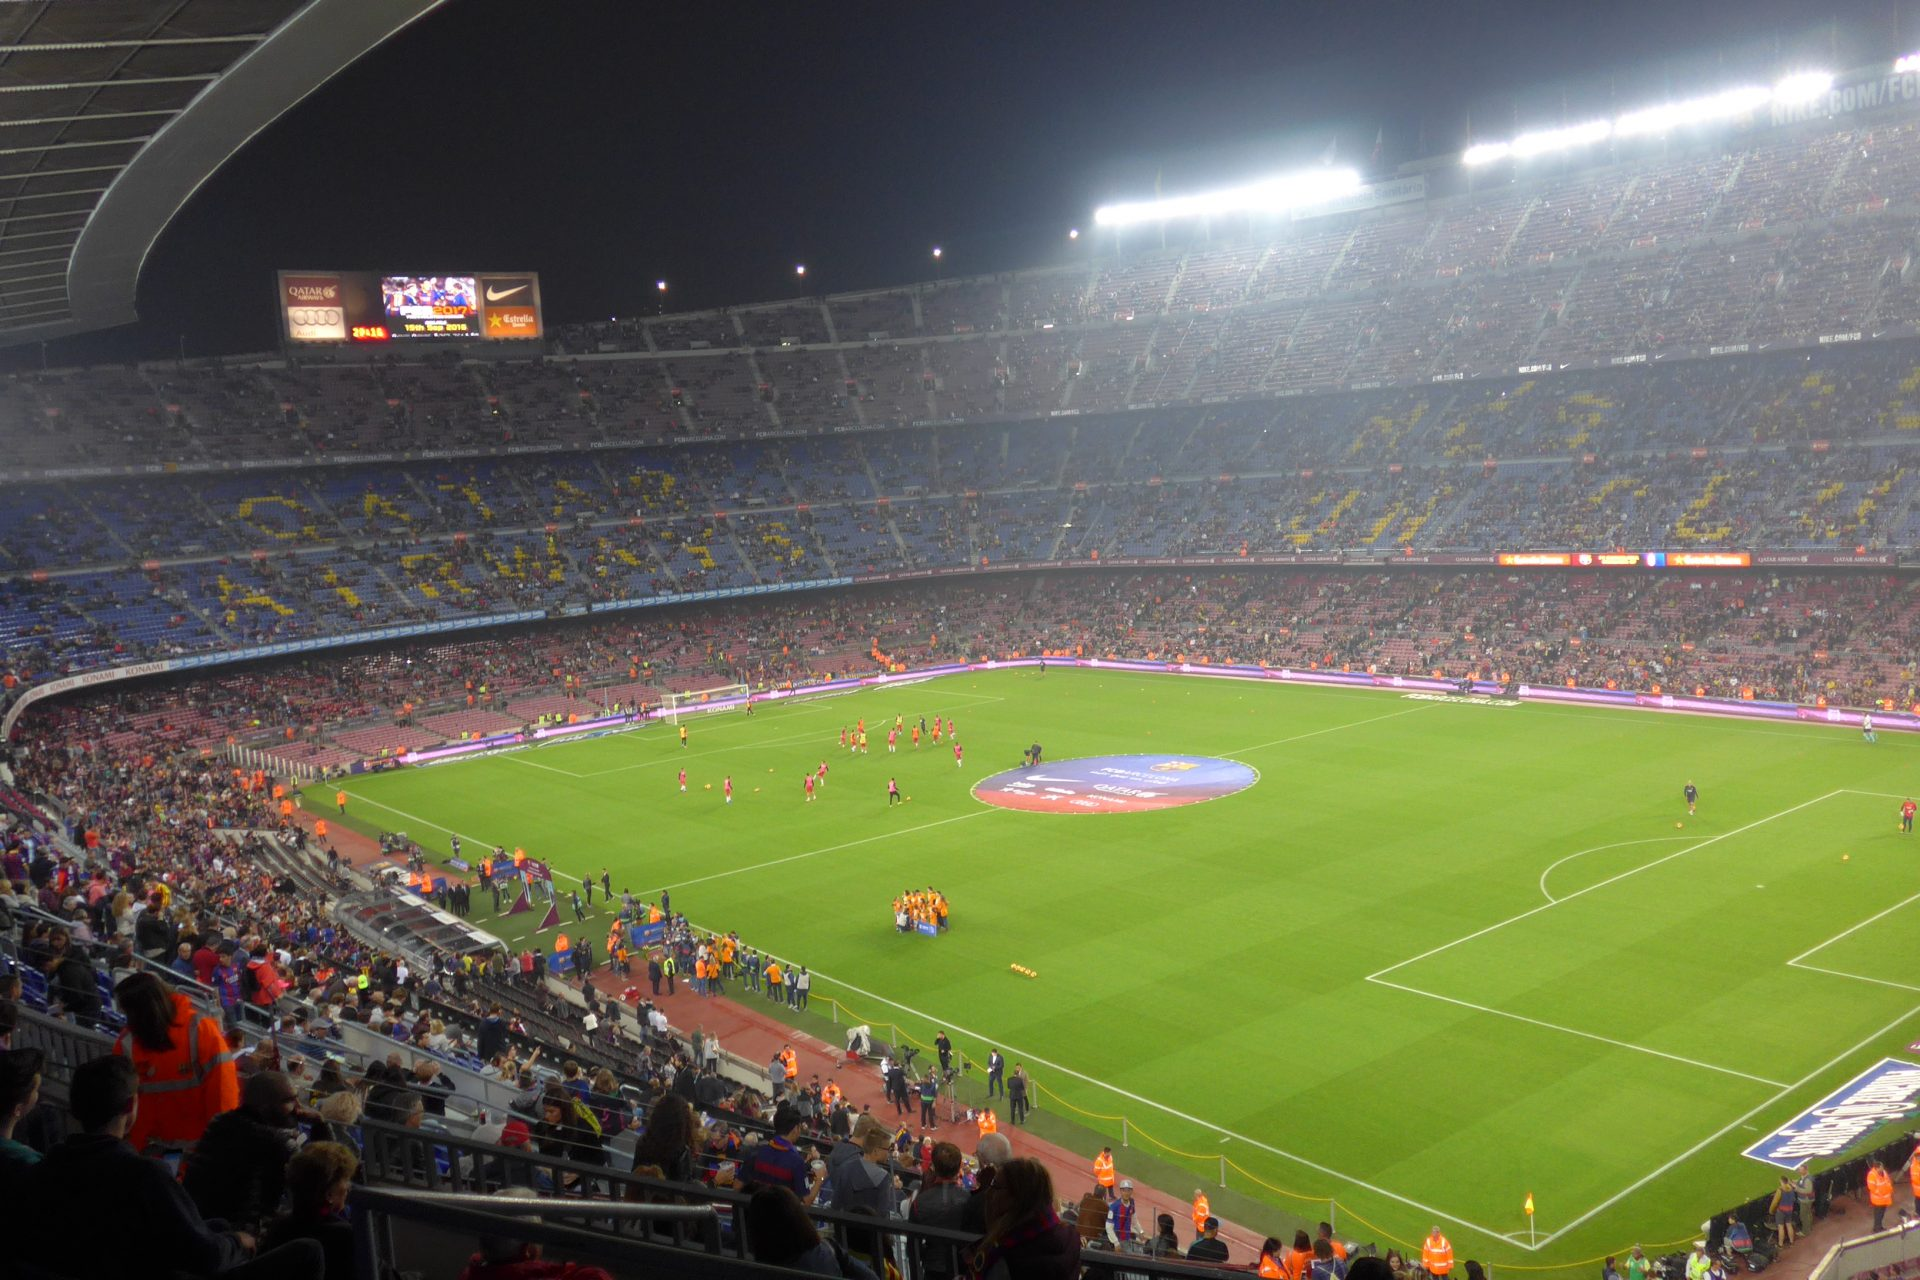 How to catch an infamous FC Barcelona game at the massive Camp Nou during your trip